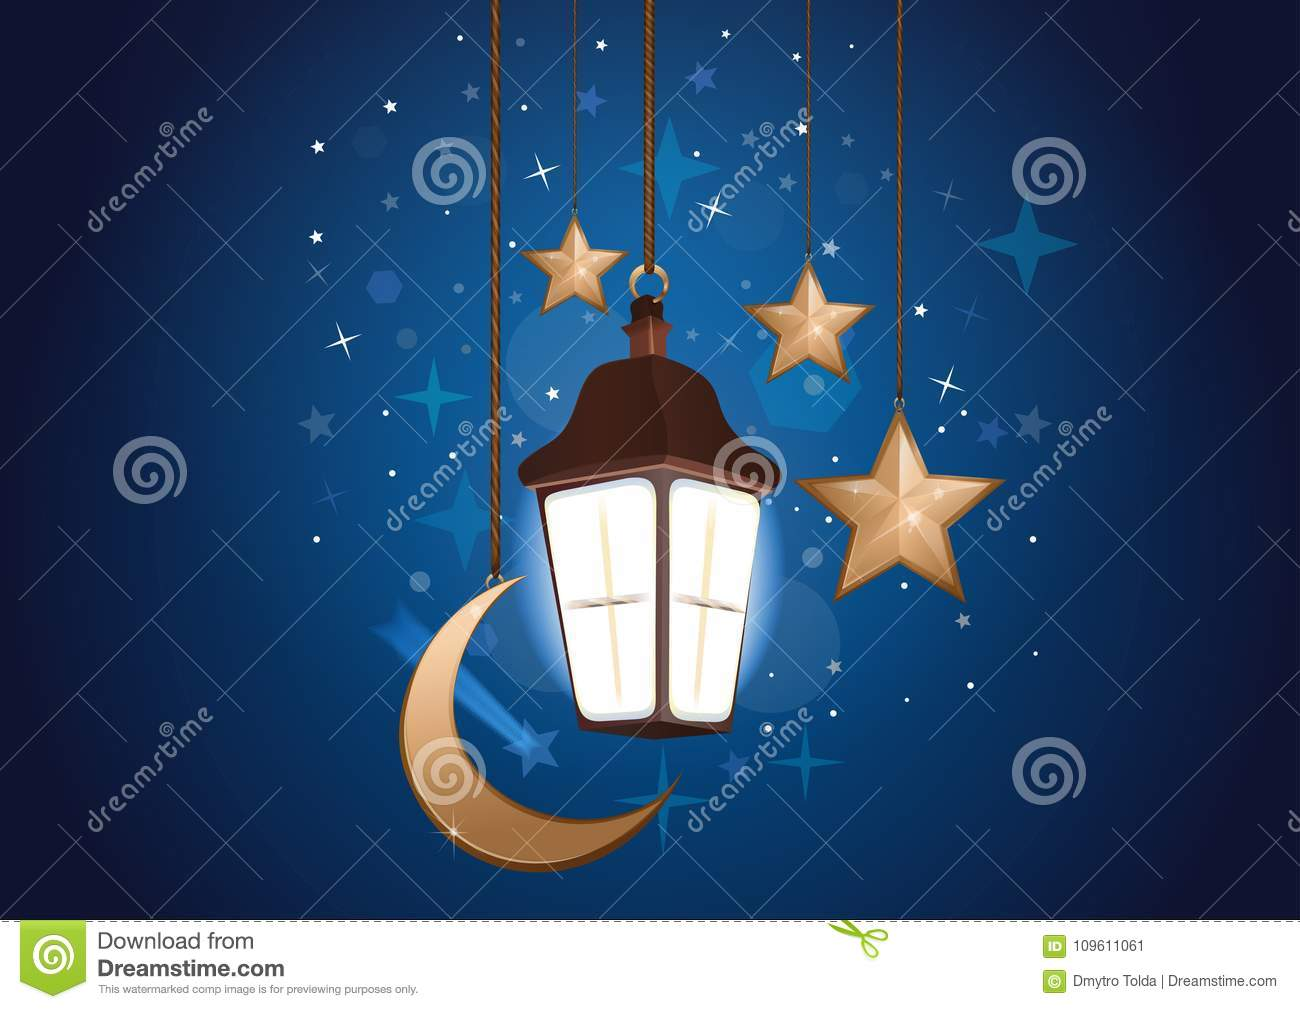 Night background with moon, stars and lantern